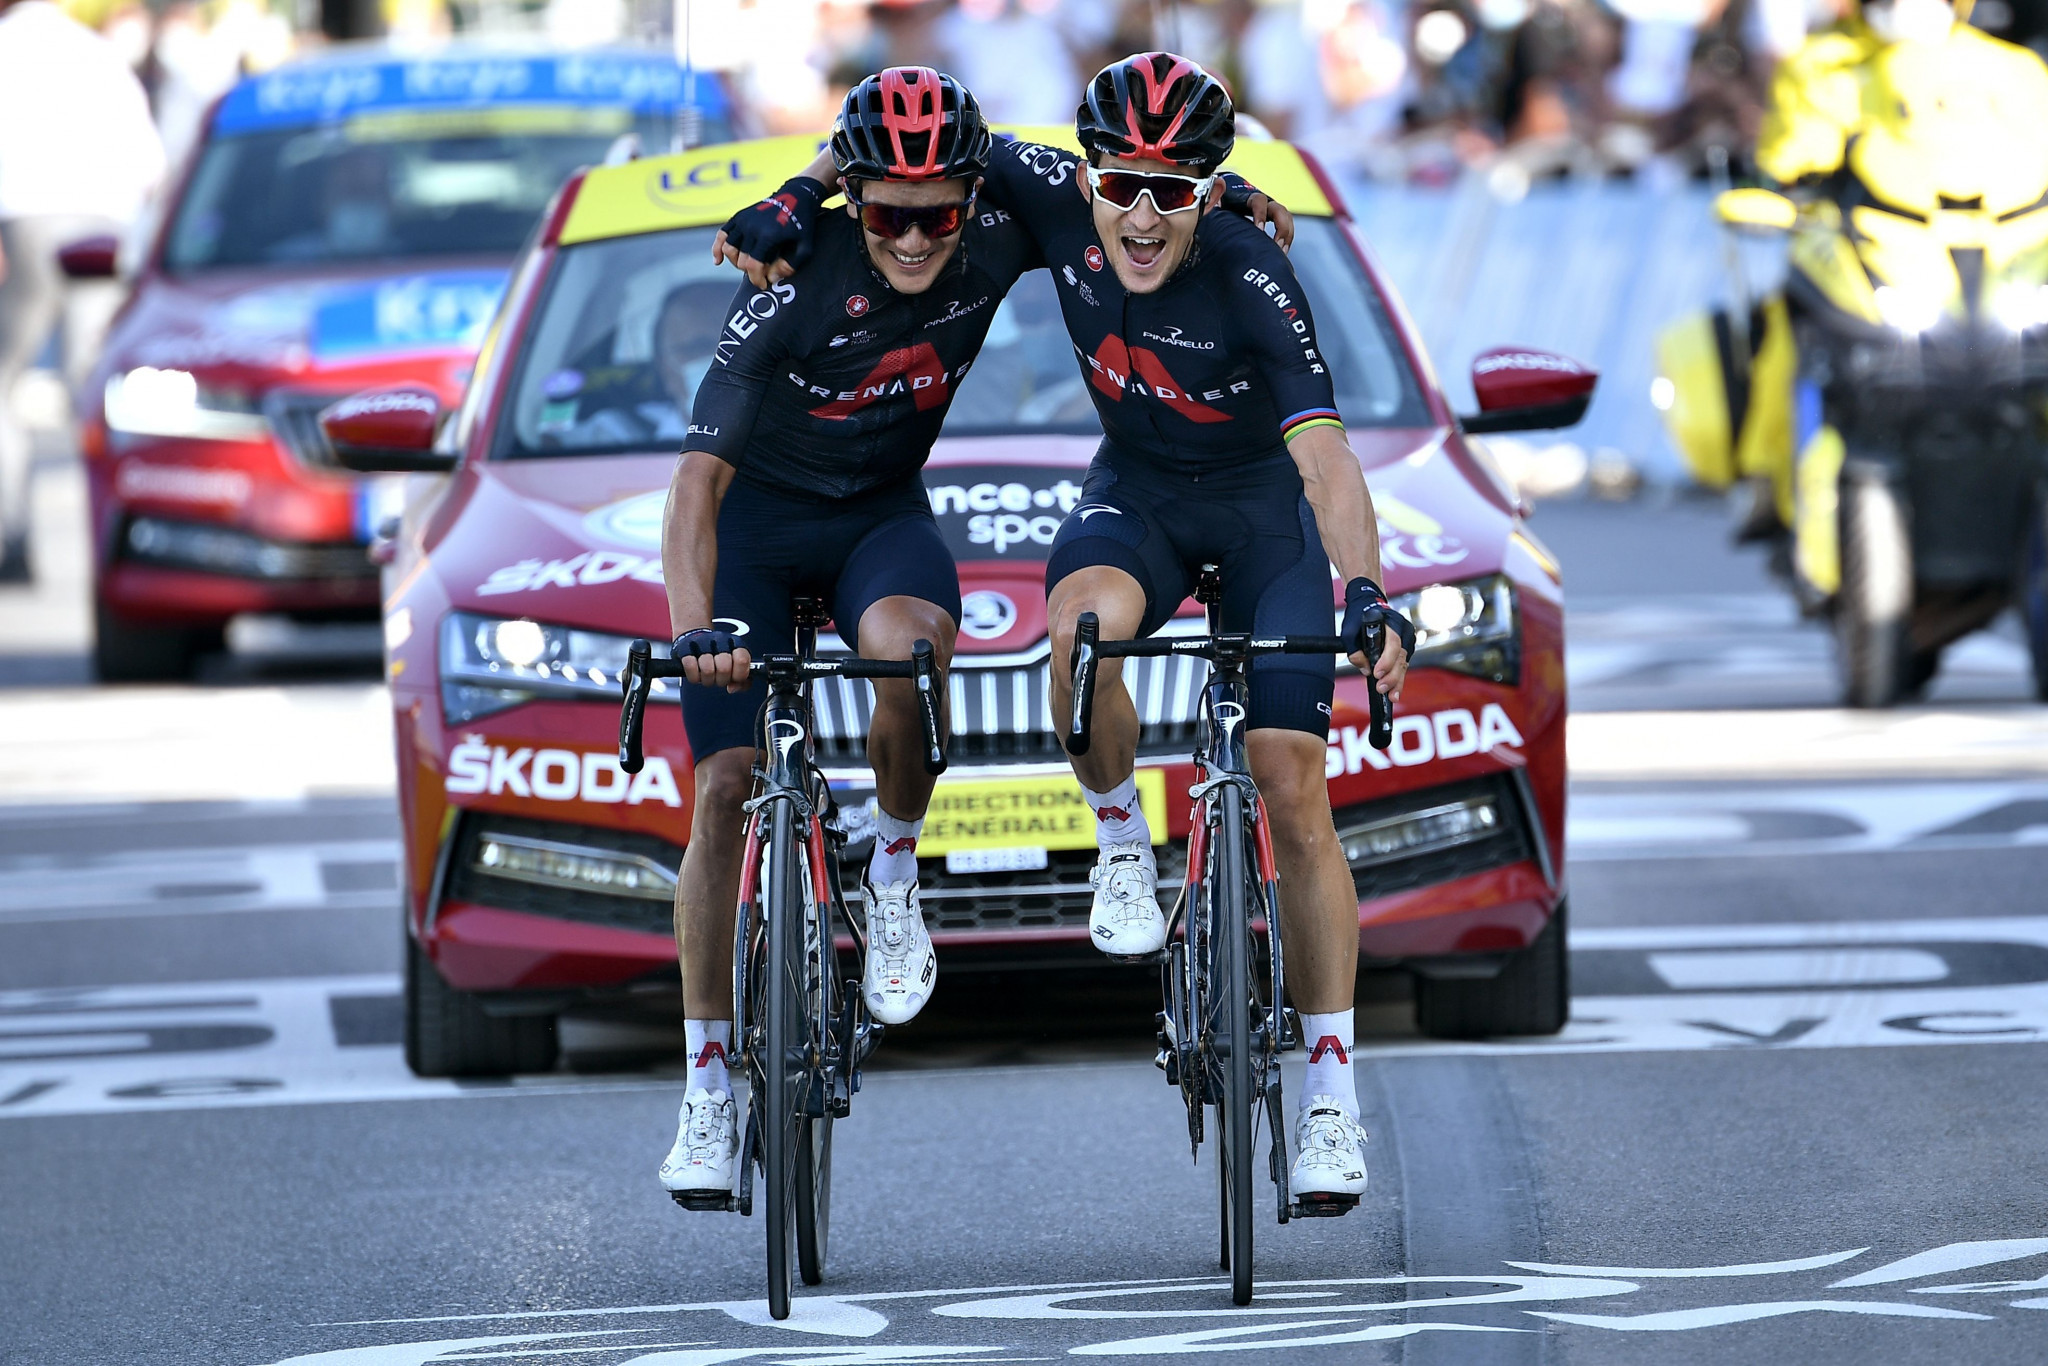 Kwiatkowski and Carapaz give Ineos Grenadiers boost on stage 18 of Tour de France